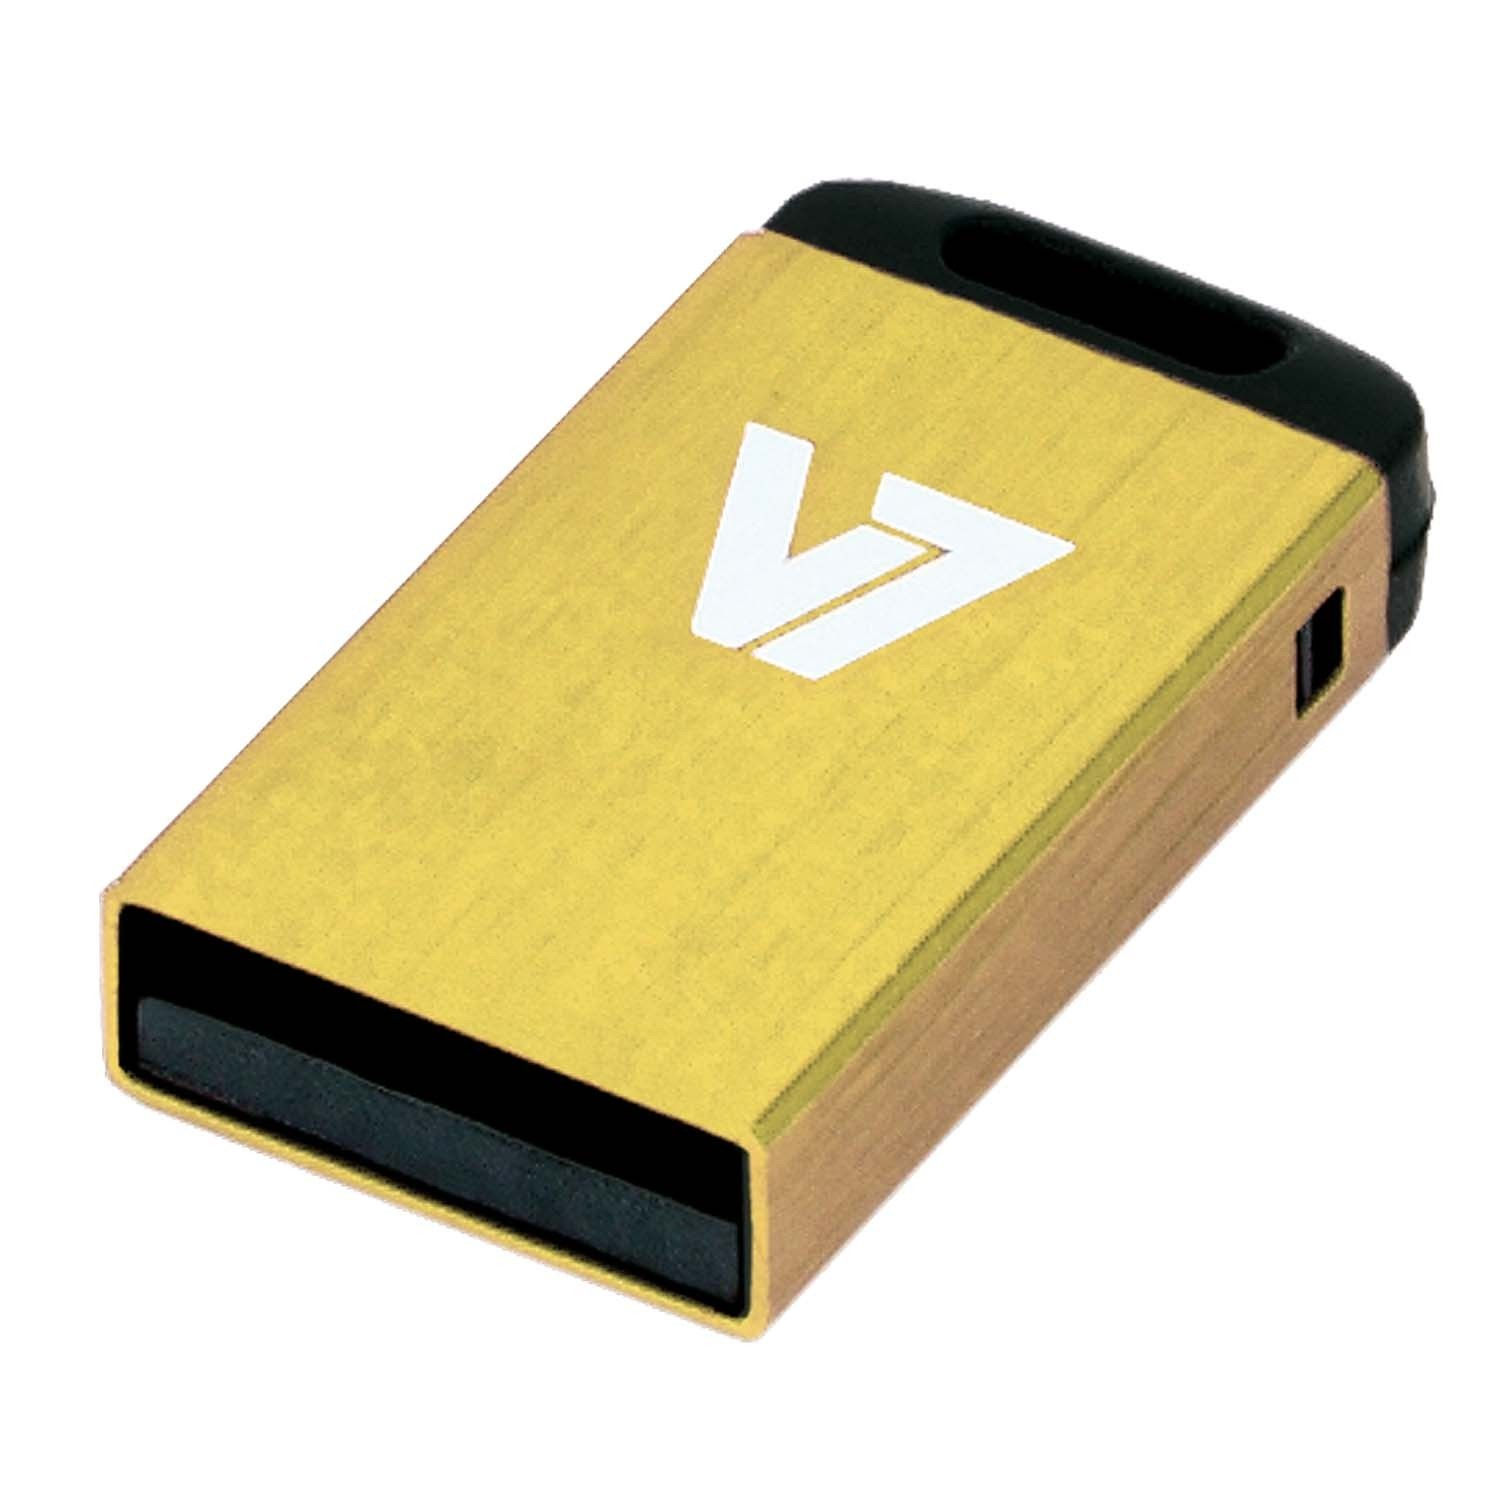 V7 USB-Stick »USB NANO STICK 8GB YELLOW«